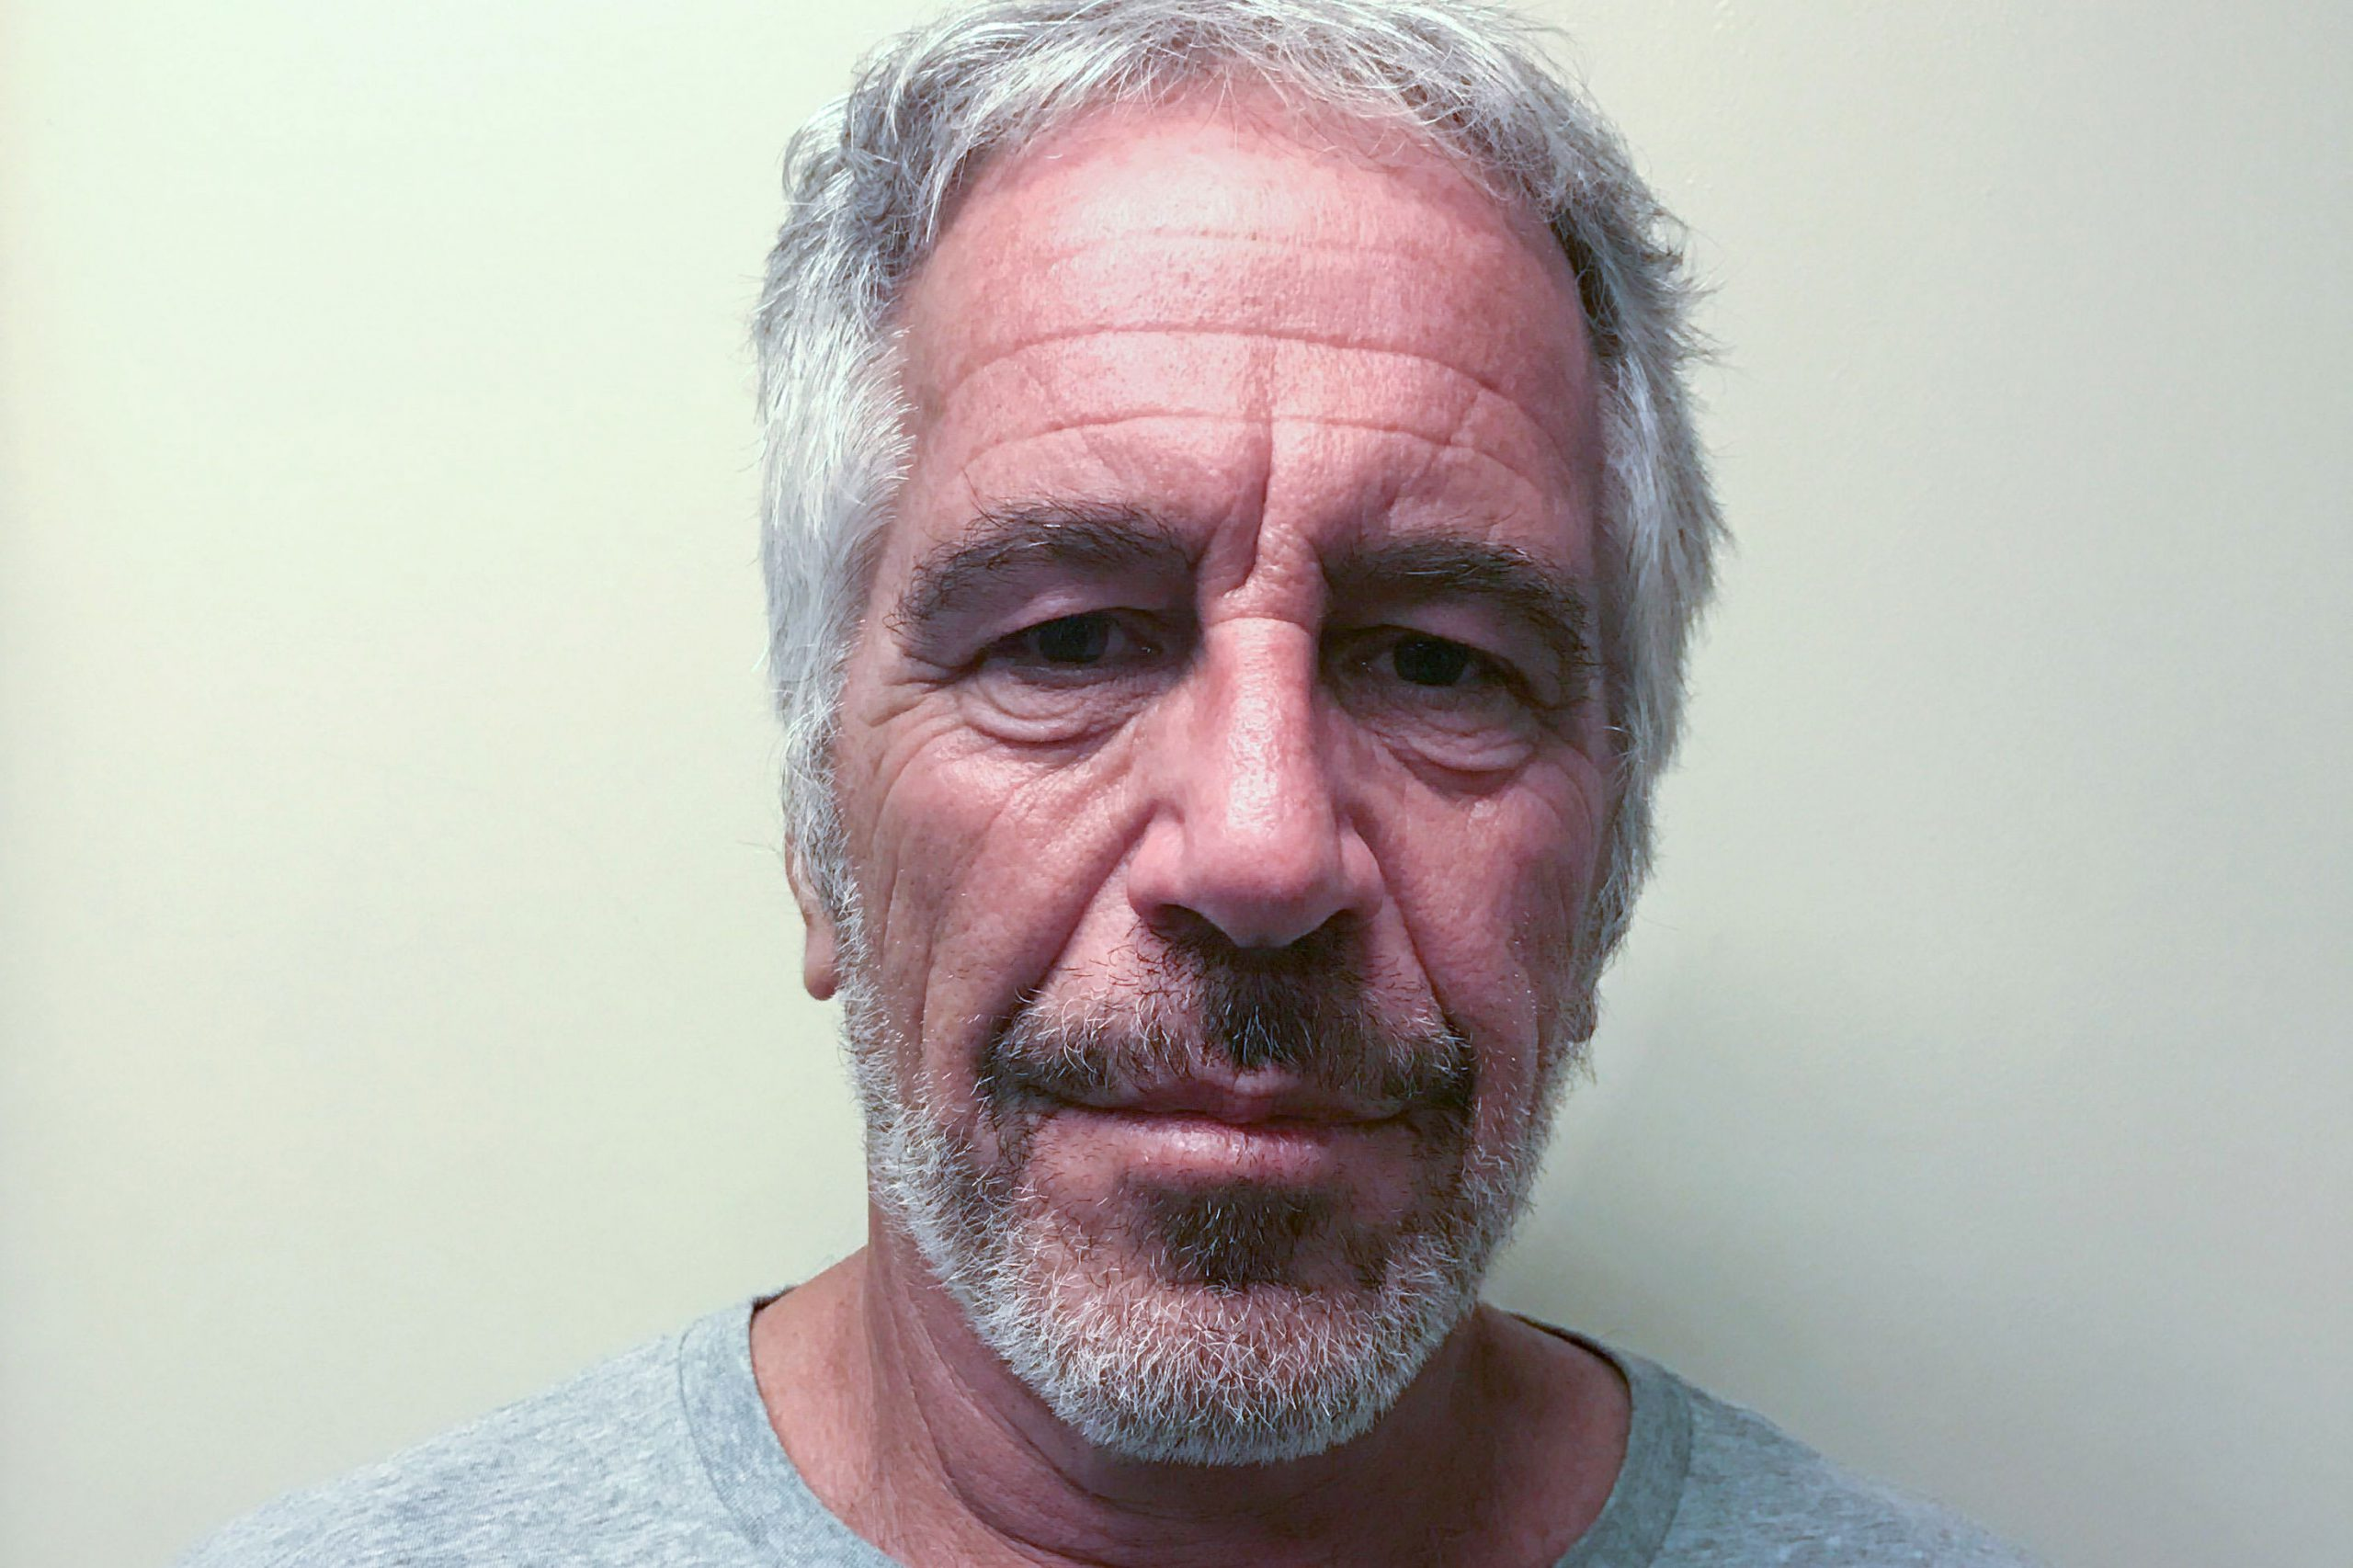 Jeffrey Epstein spent over $500,000 to fund unaired episodes of science TV show a year before sex trafficking charges